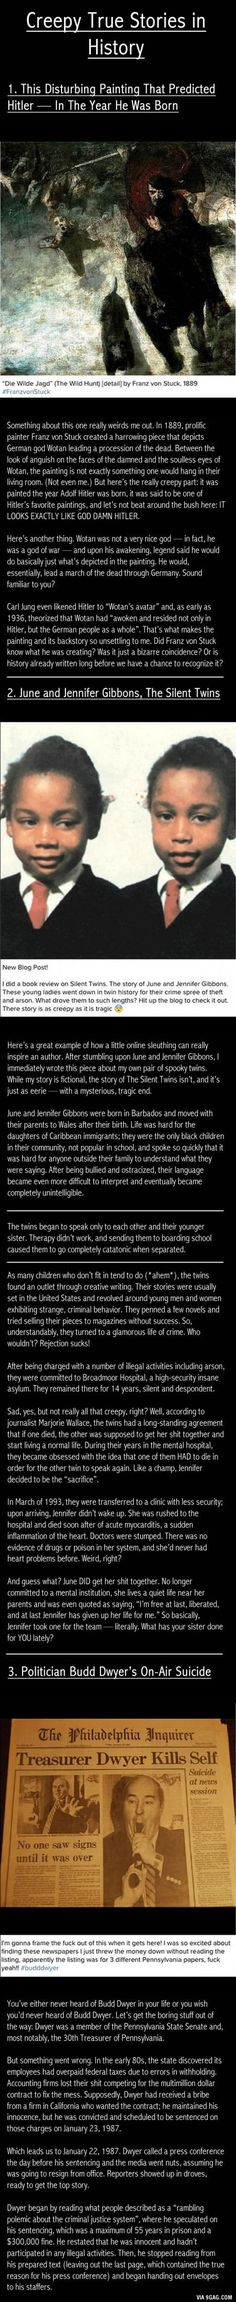 Creepy Stories in History